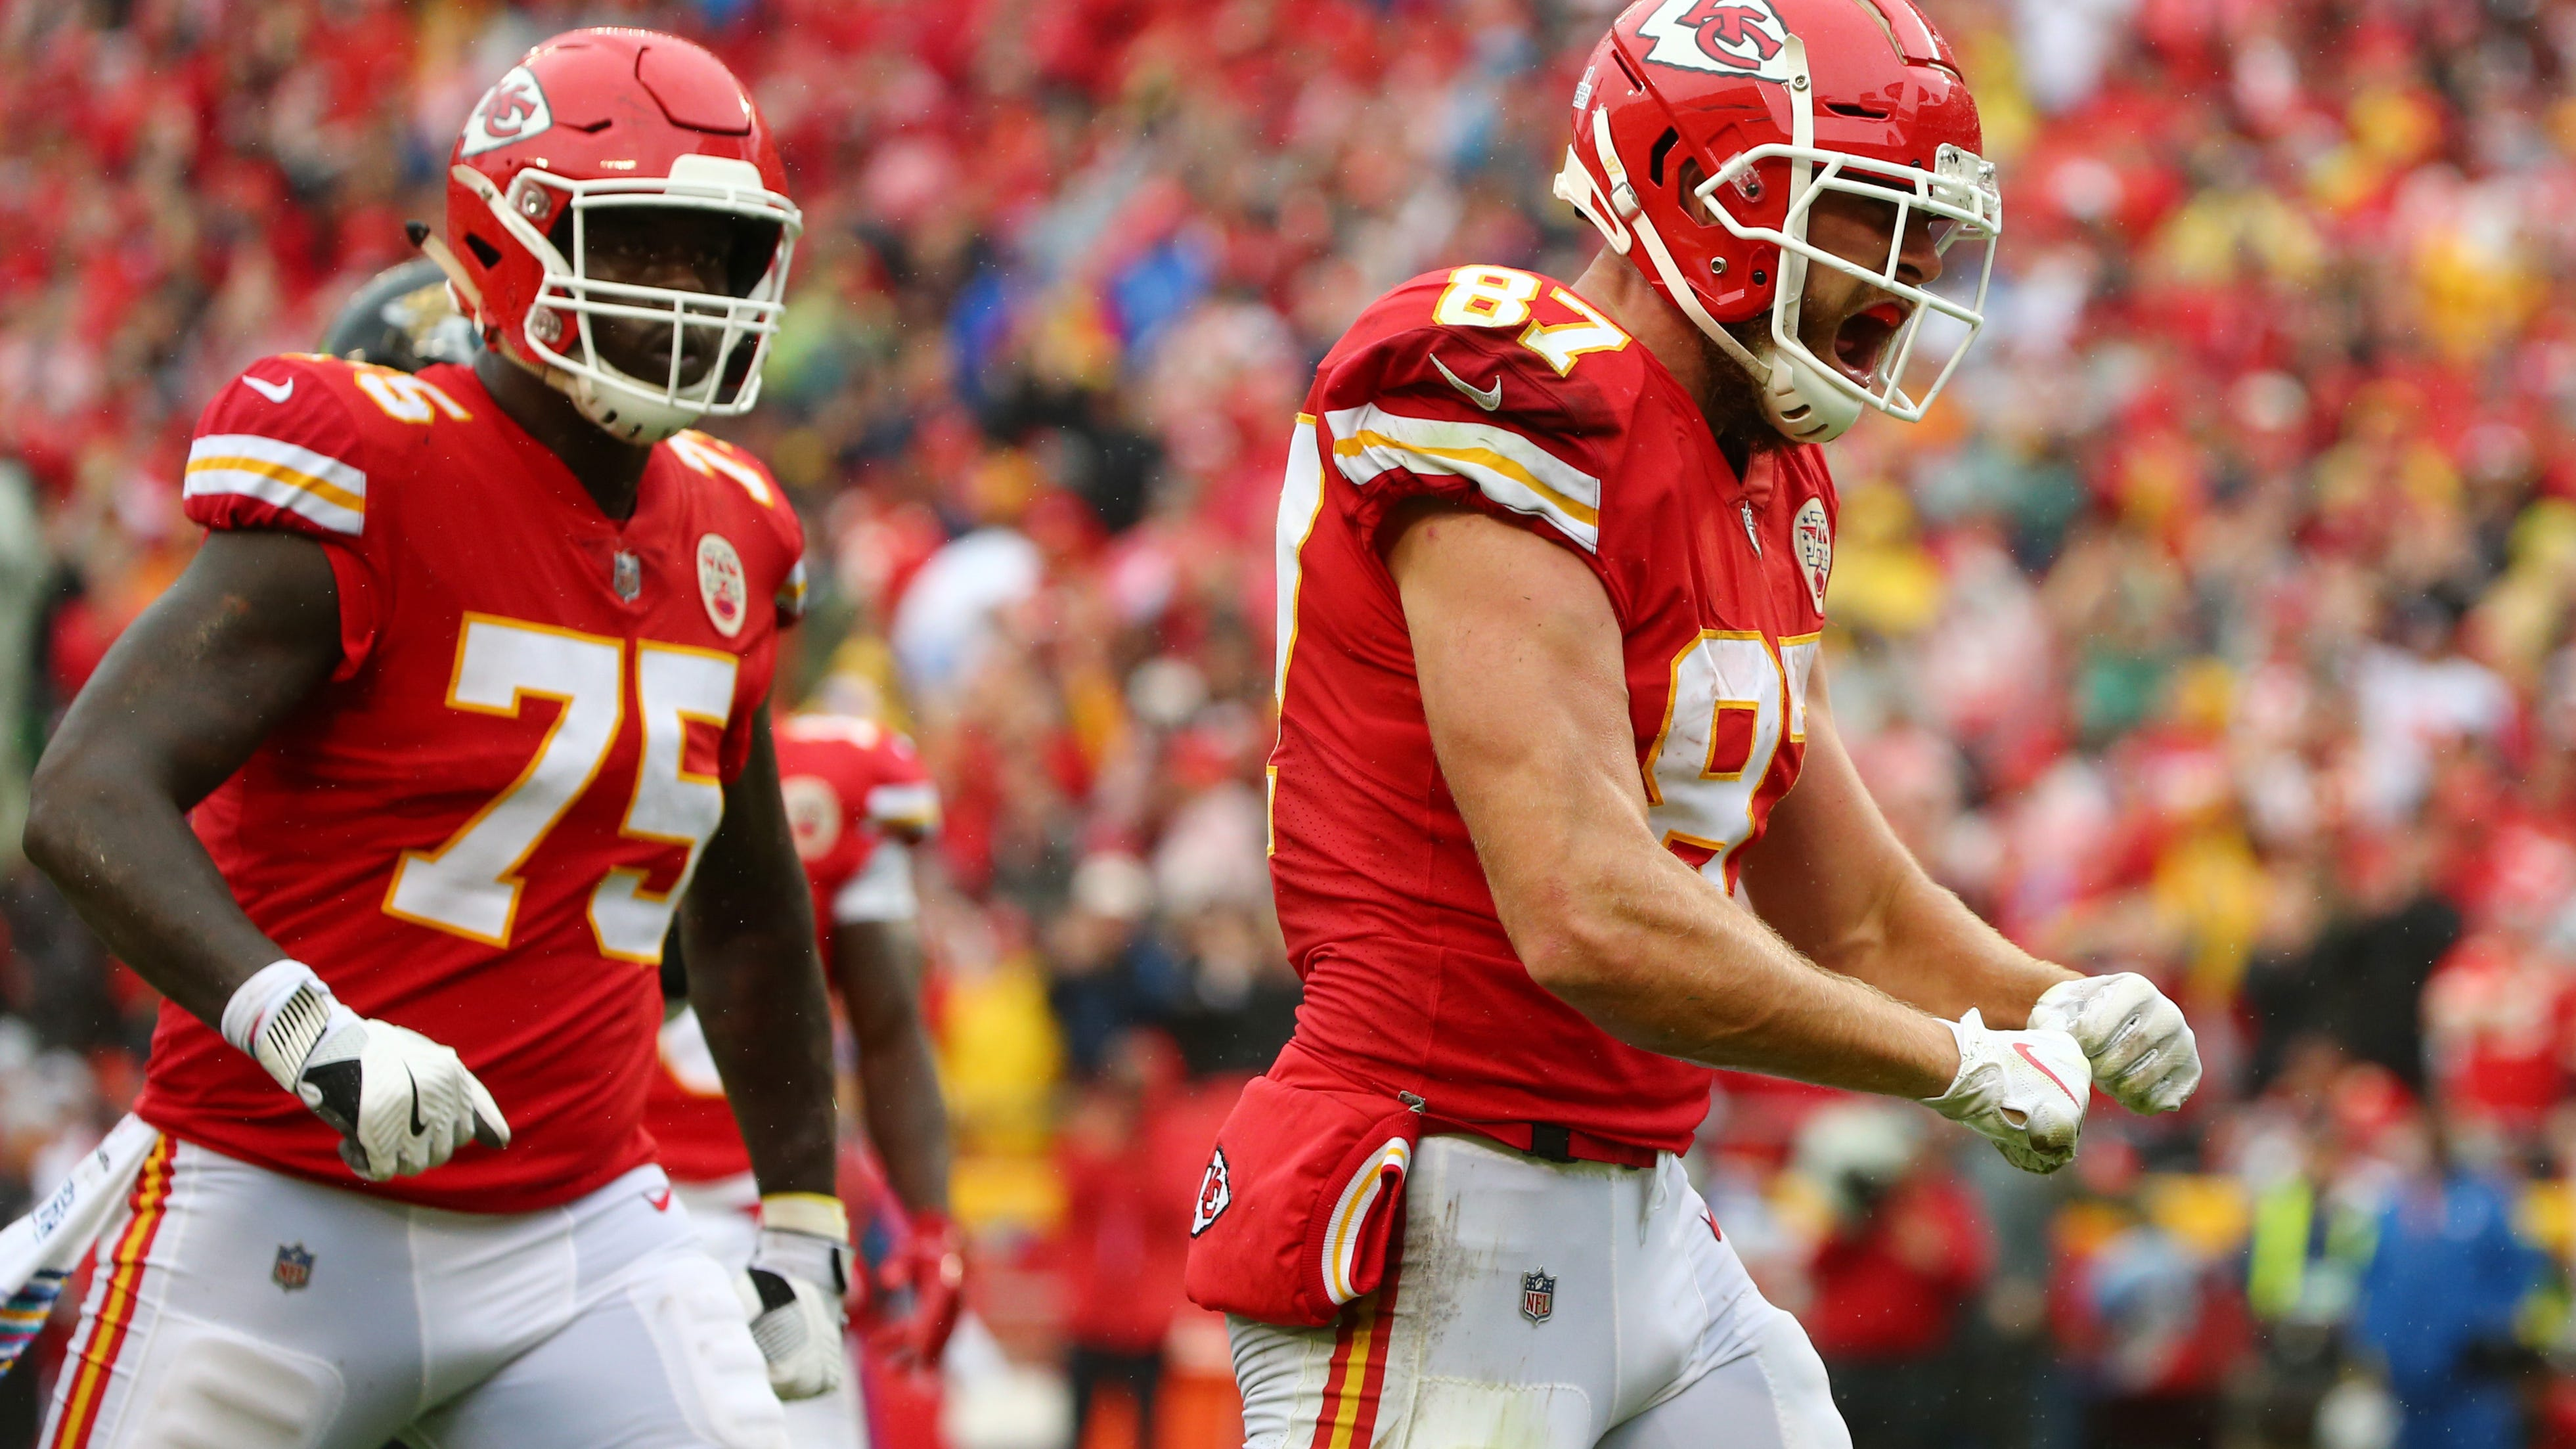 NFL Week 6 schedule 2020: How to watch, TV channel ...